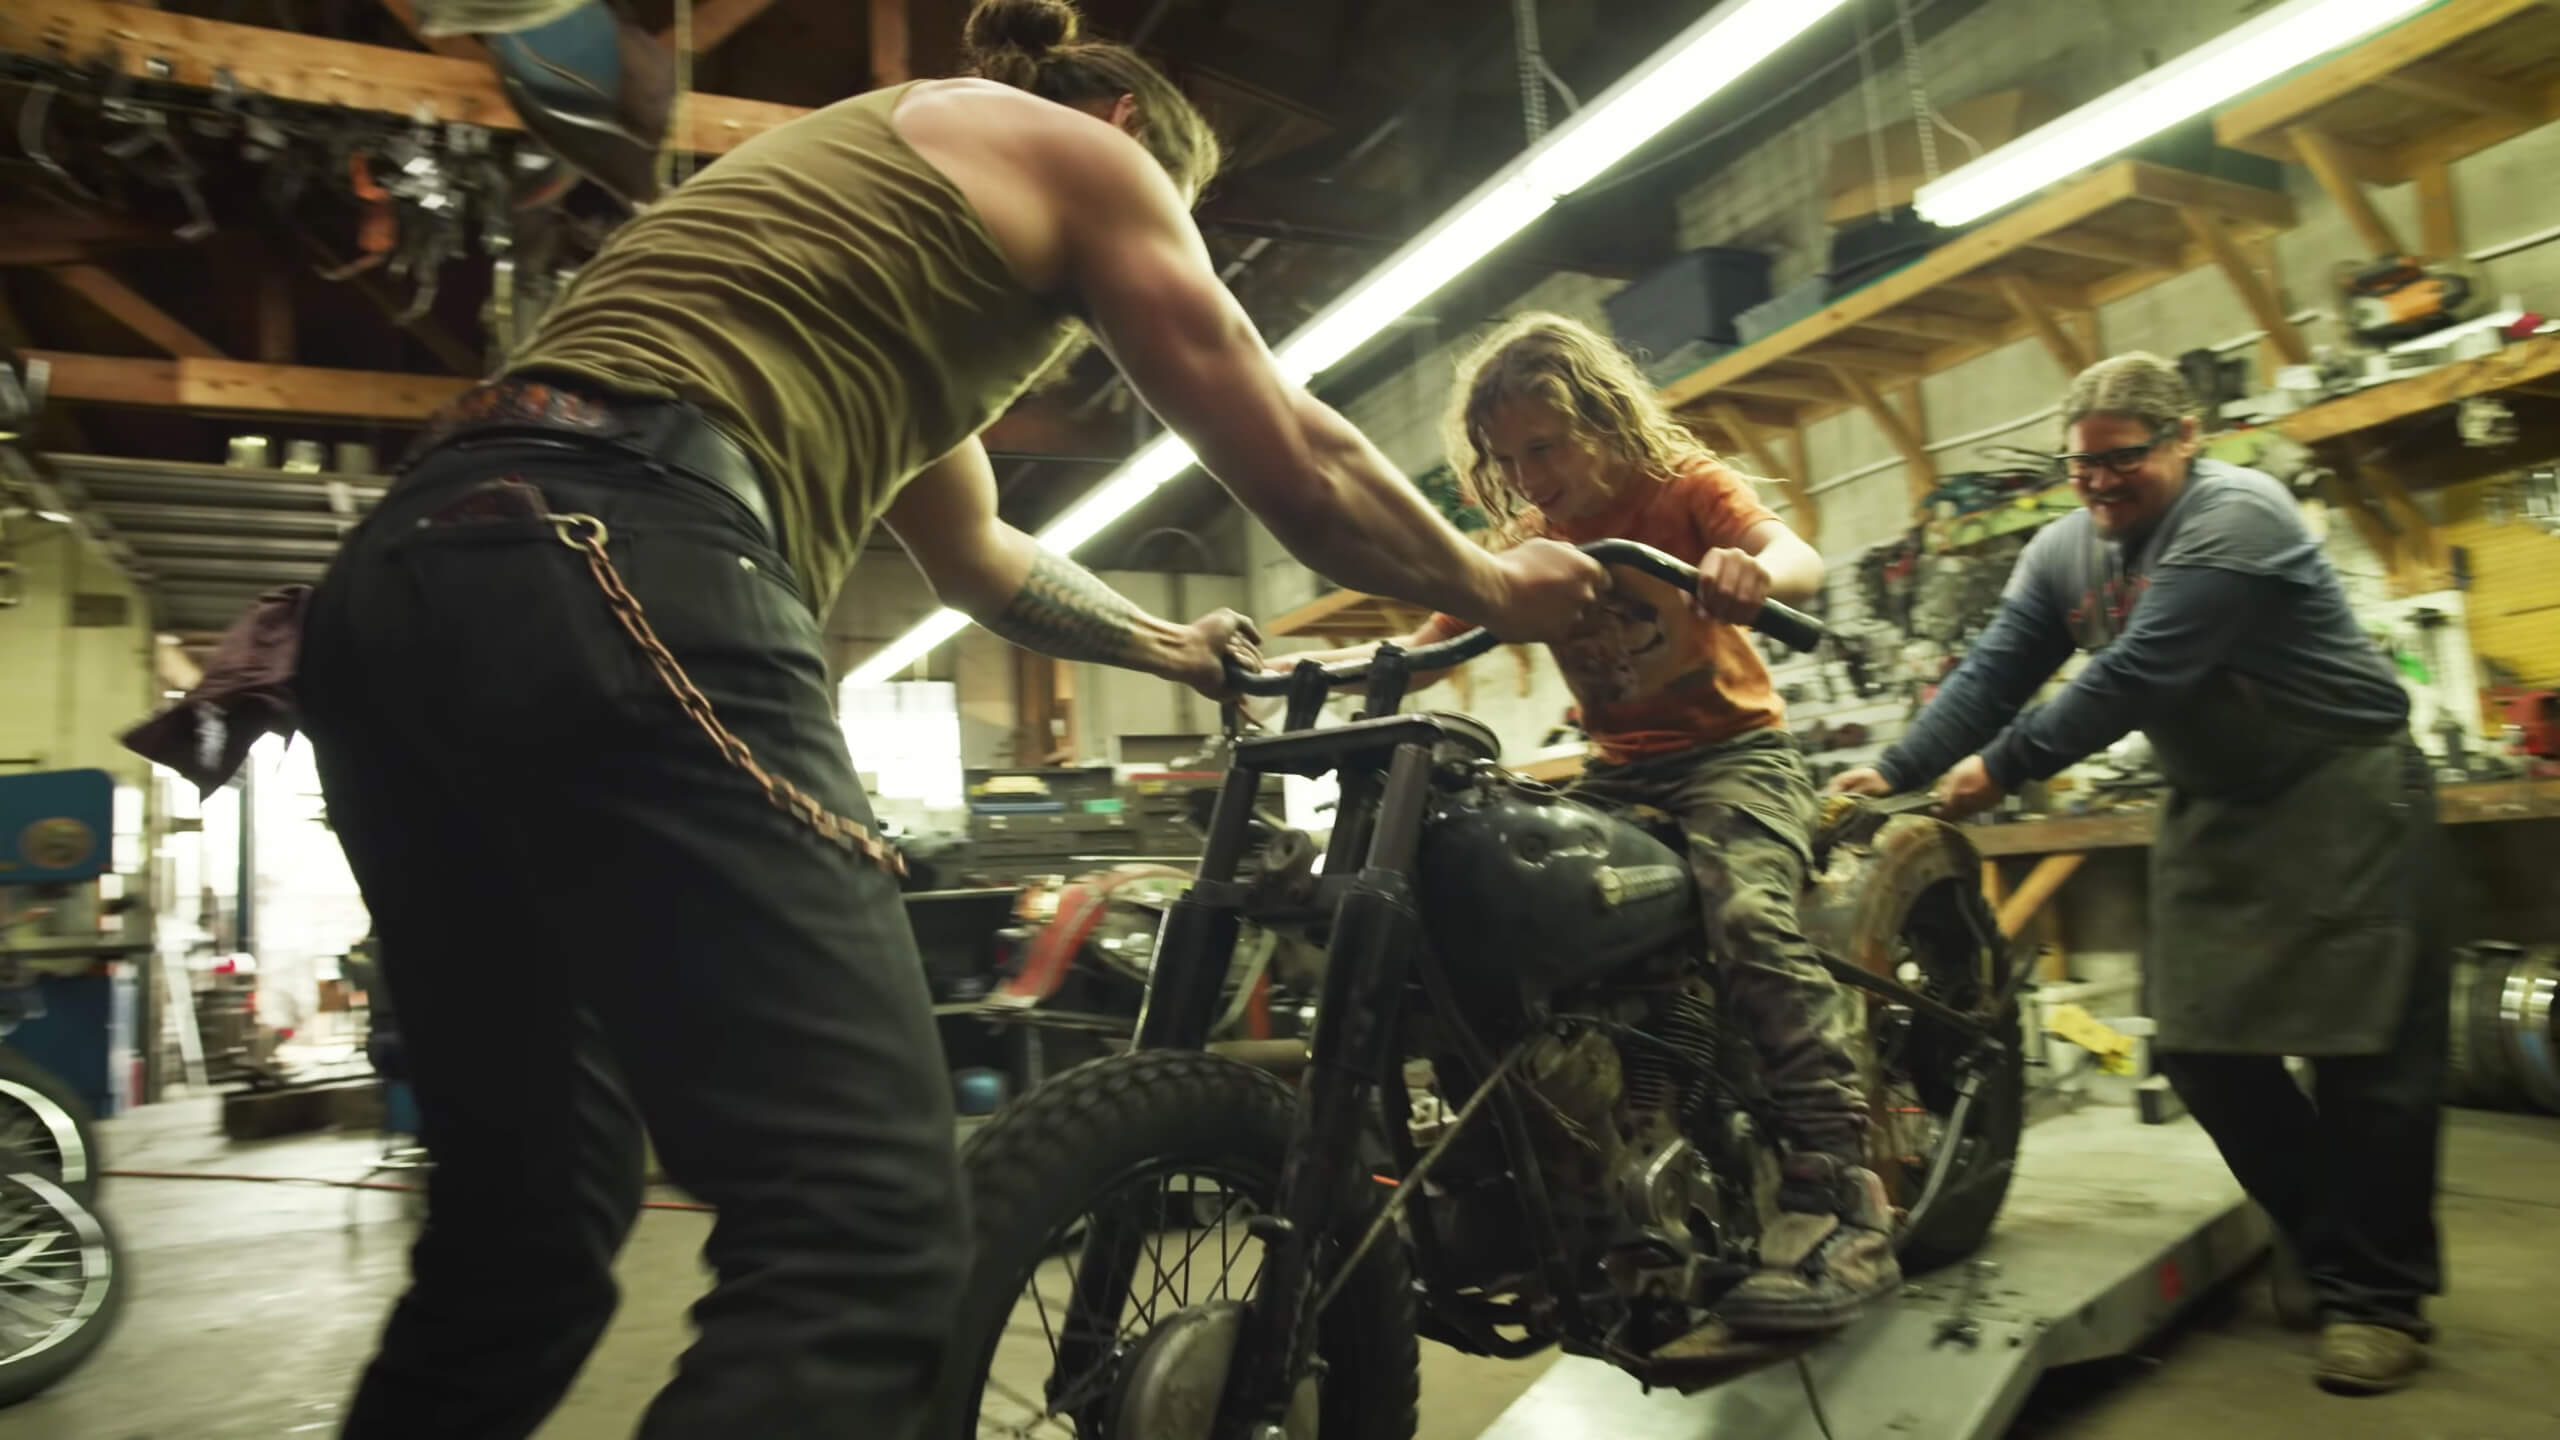 TMA worked with actor Jason Momoa to create a Father's Day video for Harley-Davidson to remind audiences why the iconic brand still resonates with audiences.